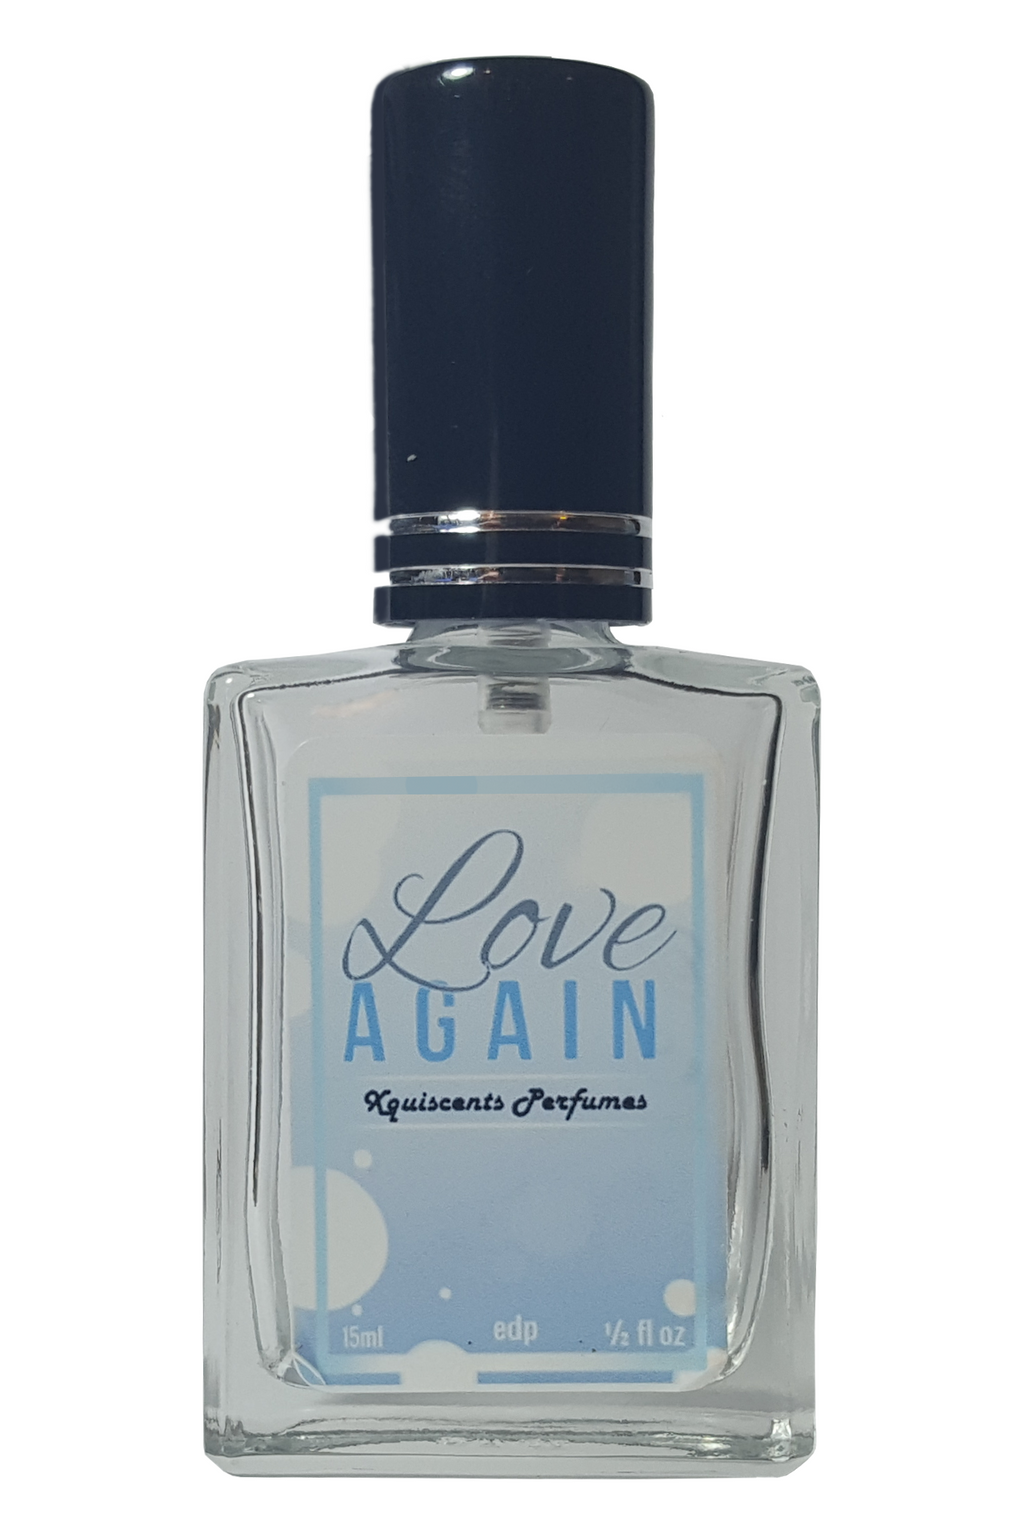 Love Again Perfume for Women - Perfumes for Women